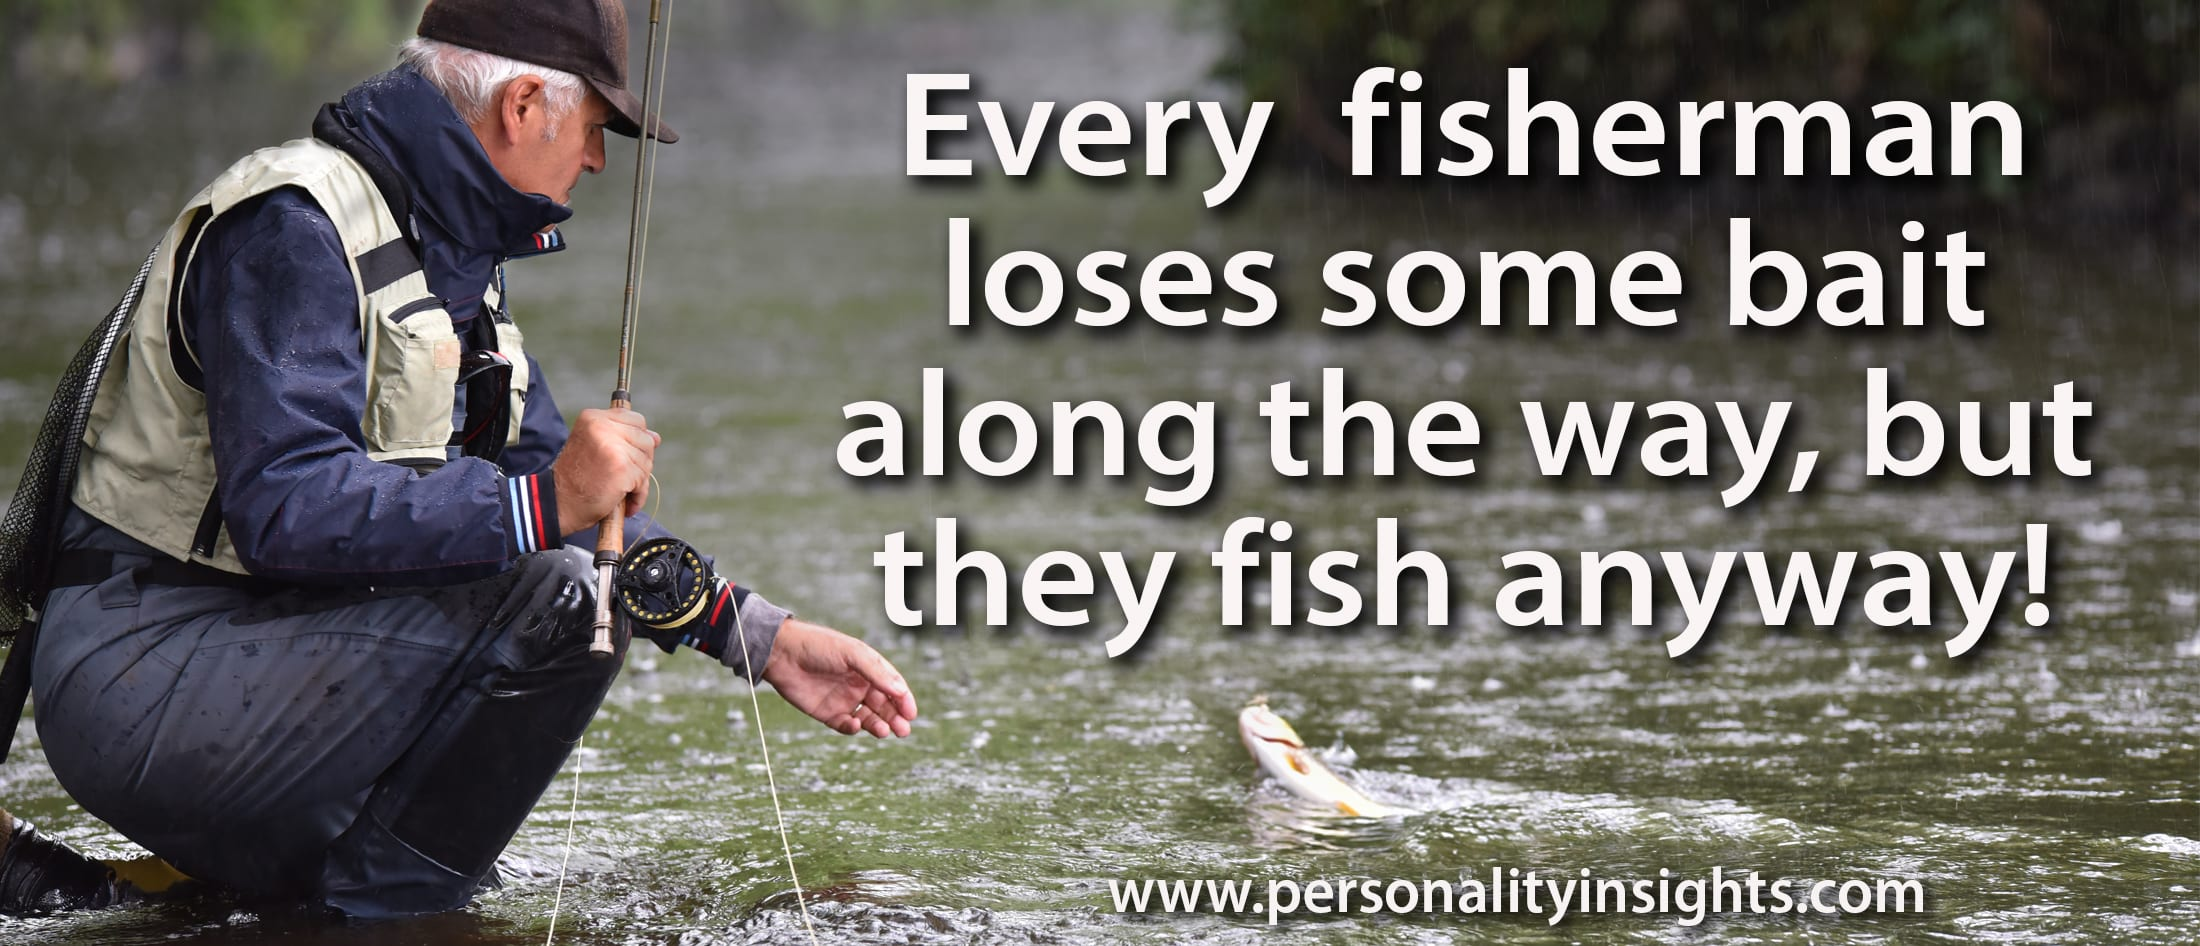 Tip: Every fisherman loses some bait along the way, but they fish anyway!